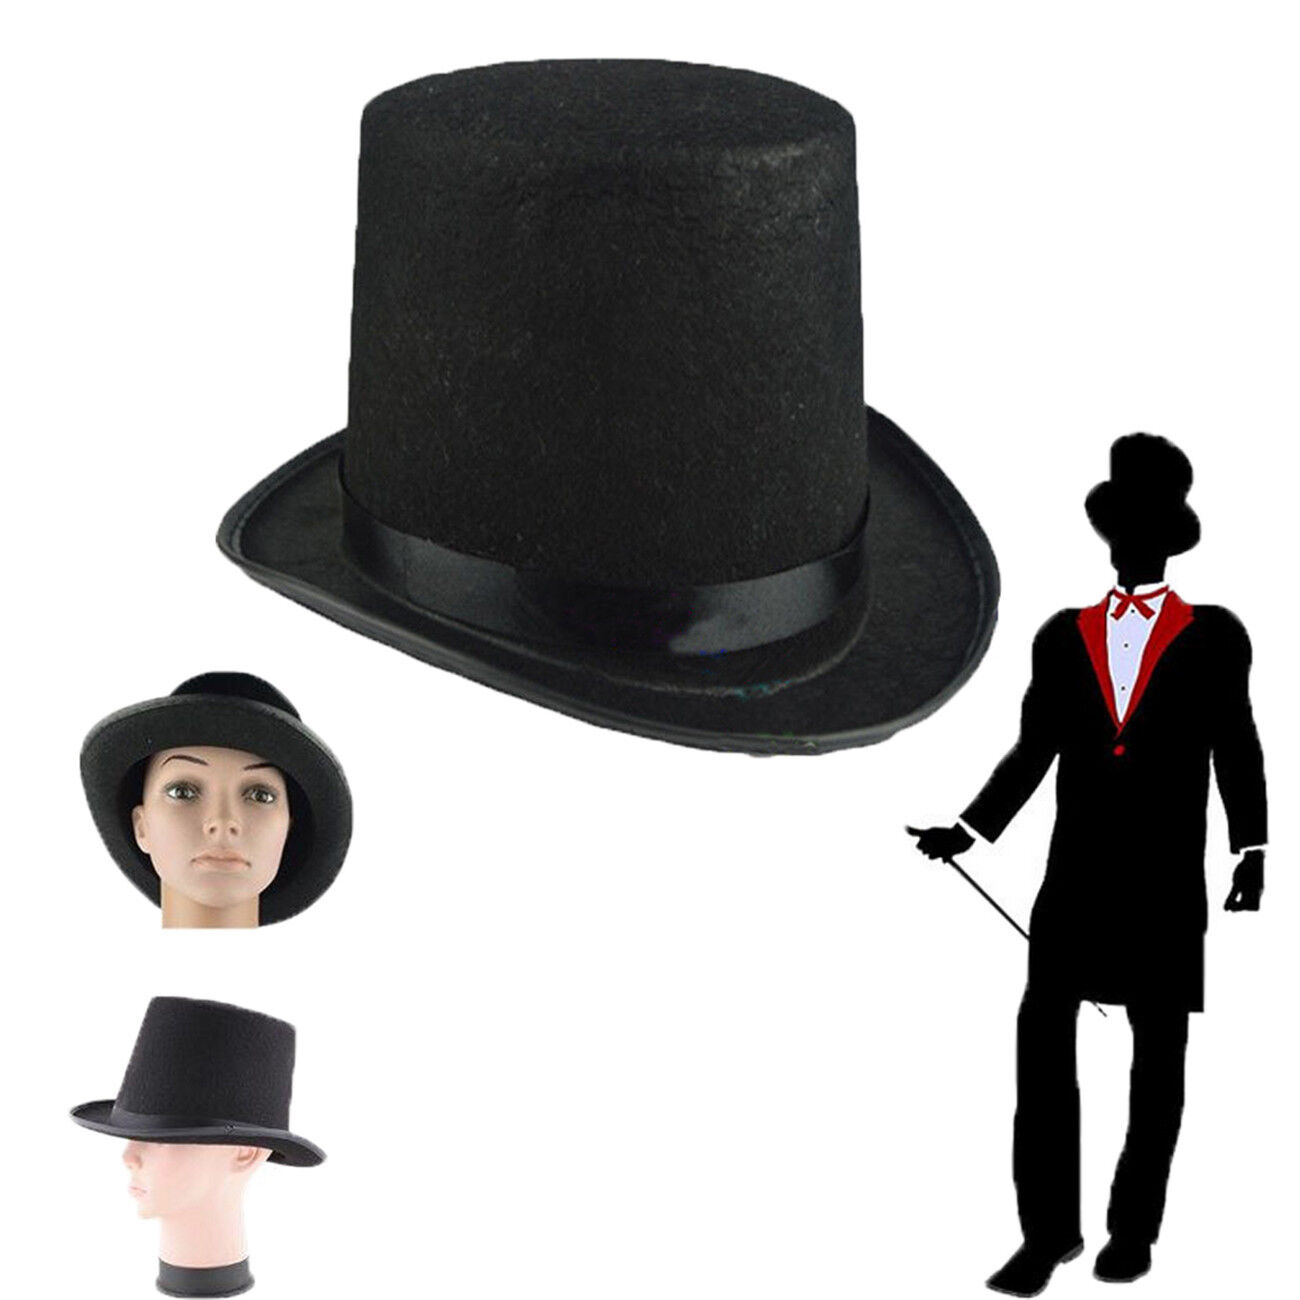 DELUXE TALL SATIN BELL TOP HAT ADULTS FANCY DRESS VICTORIAN RINGMASTER MAGICIAN